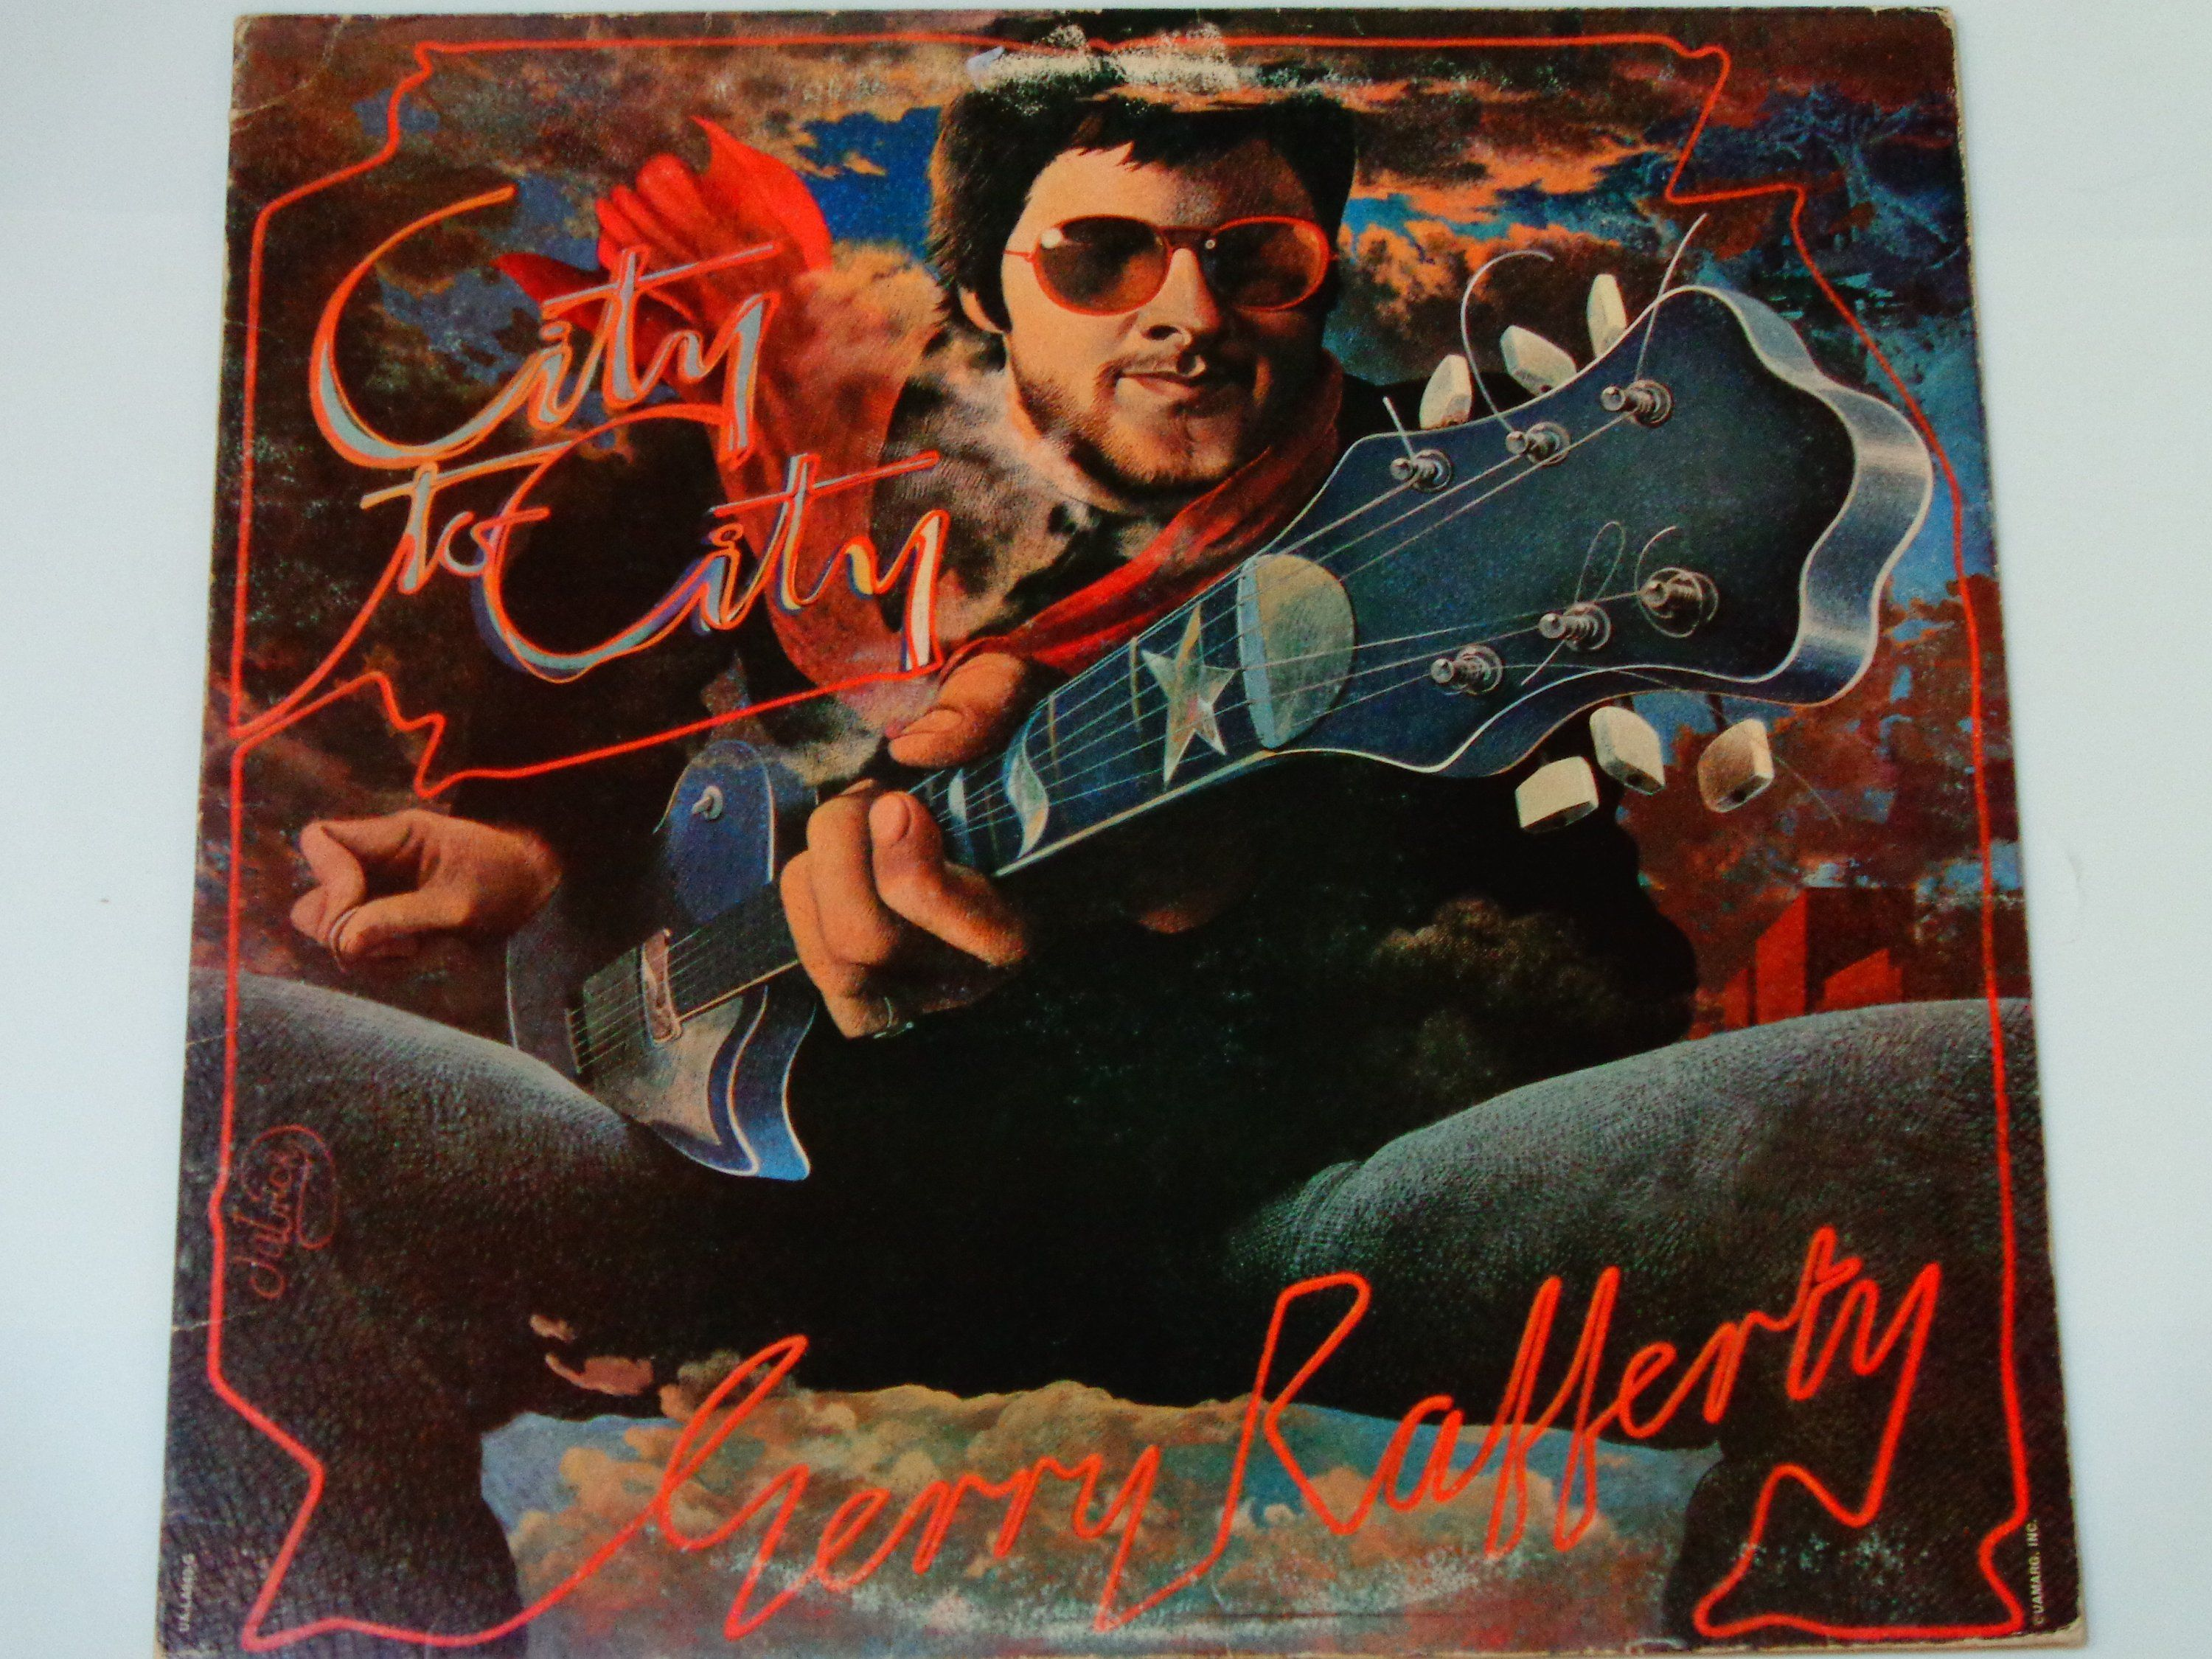 Gerry Rafferty City To City Baker Street Home And Dry Right Down The Line Soft Rock Ua 1978 Vintage Vin Gerry Rafferty Ukulele Trending Songs